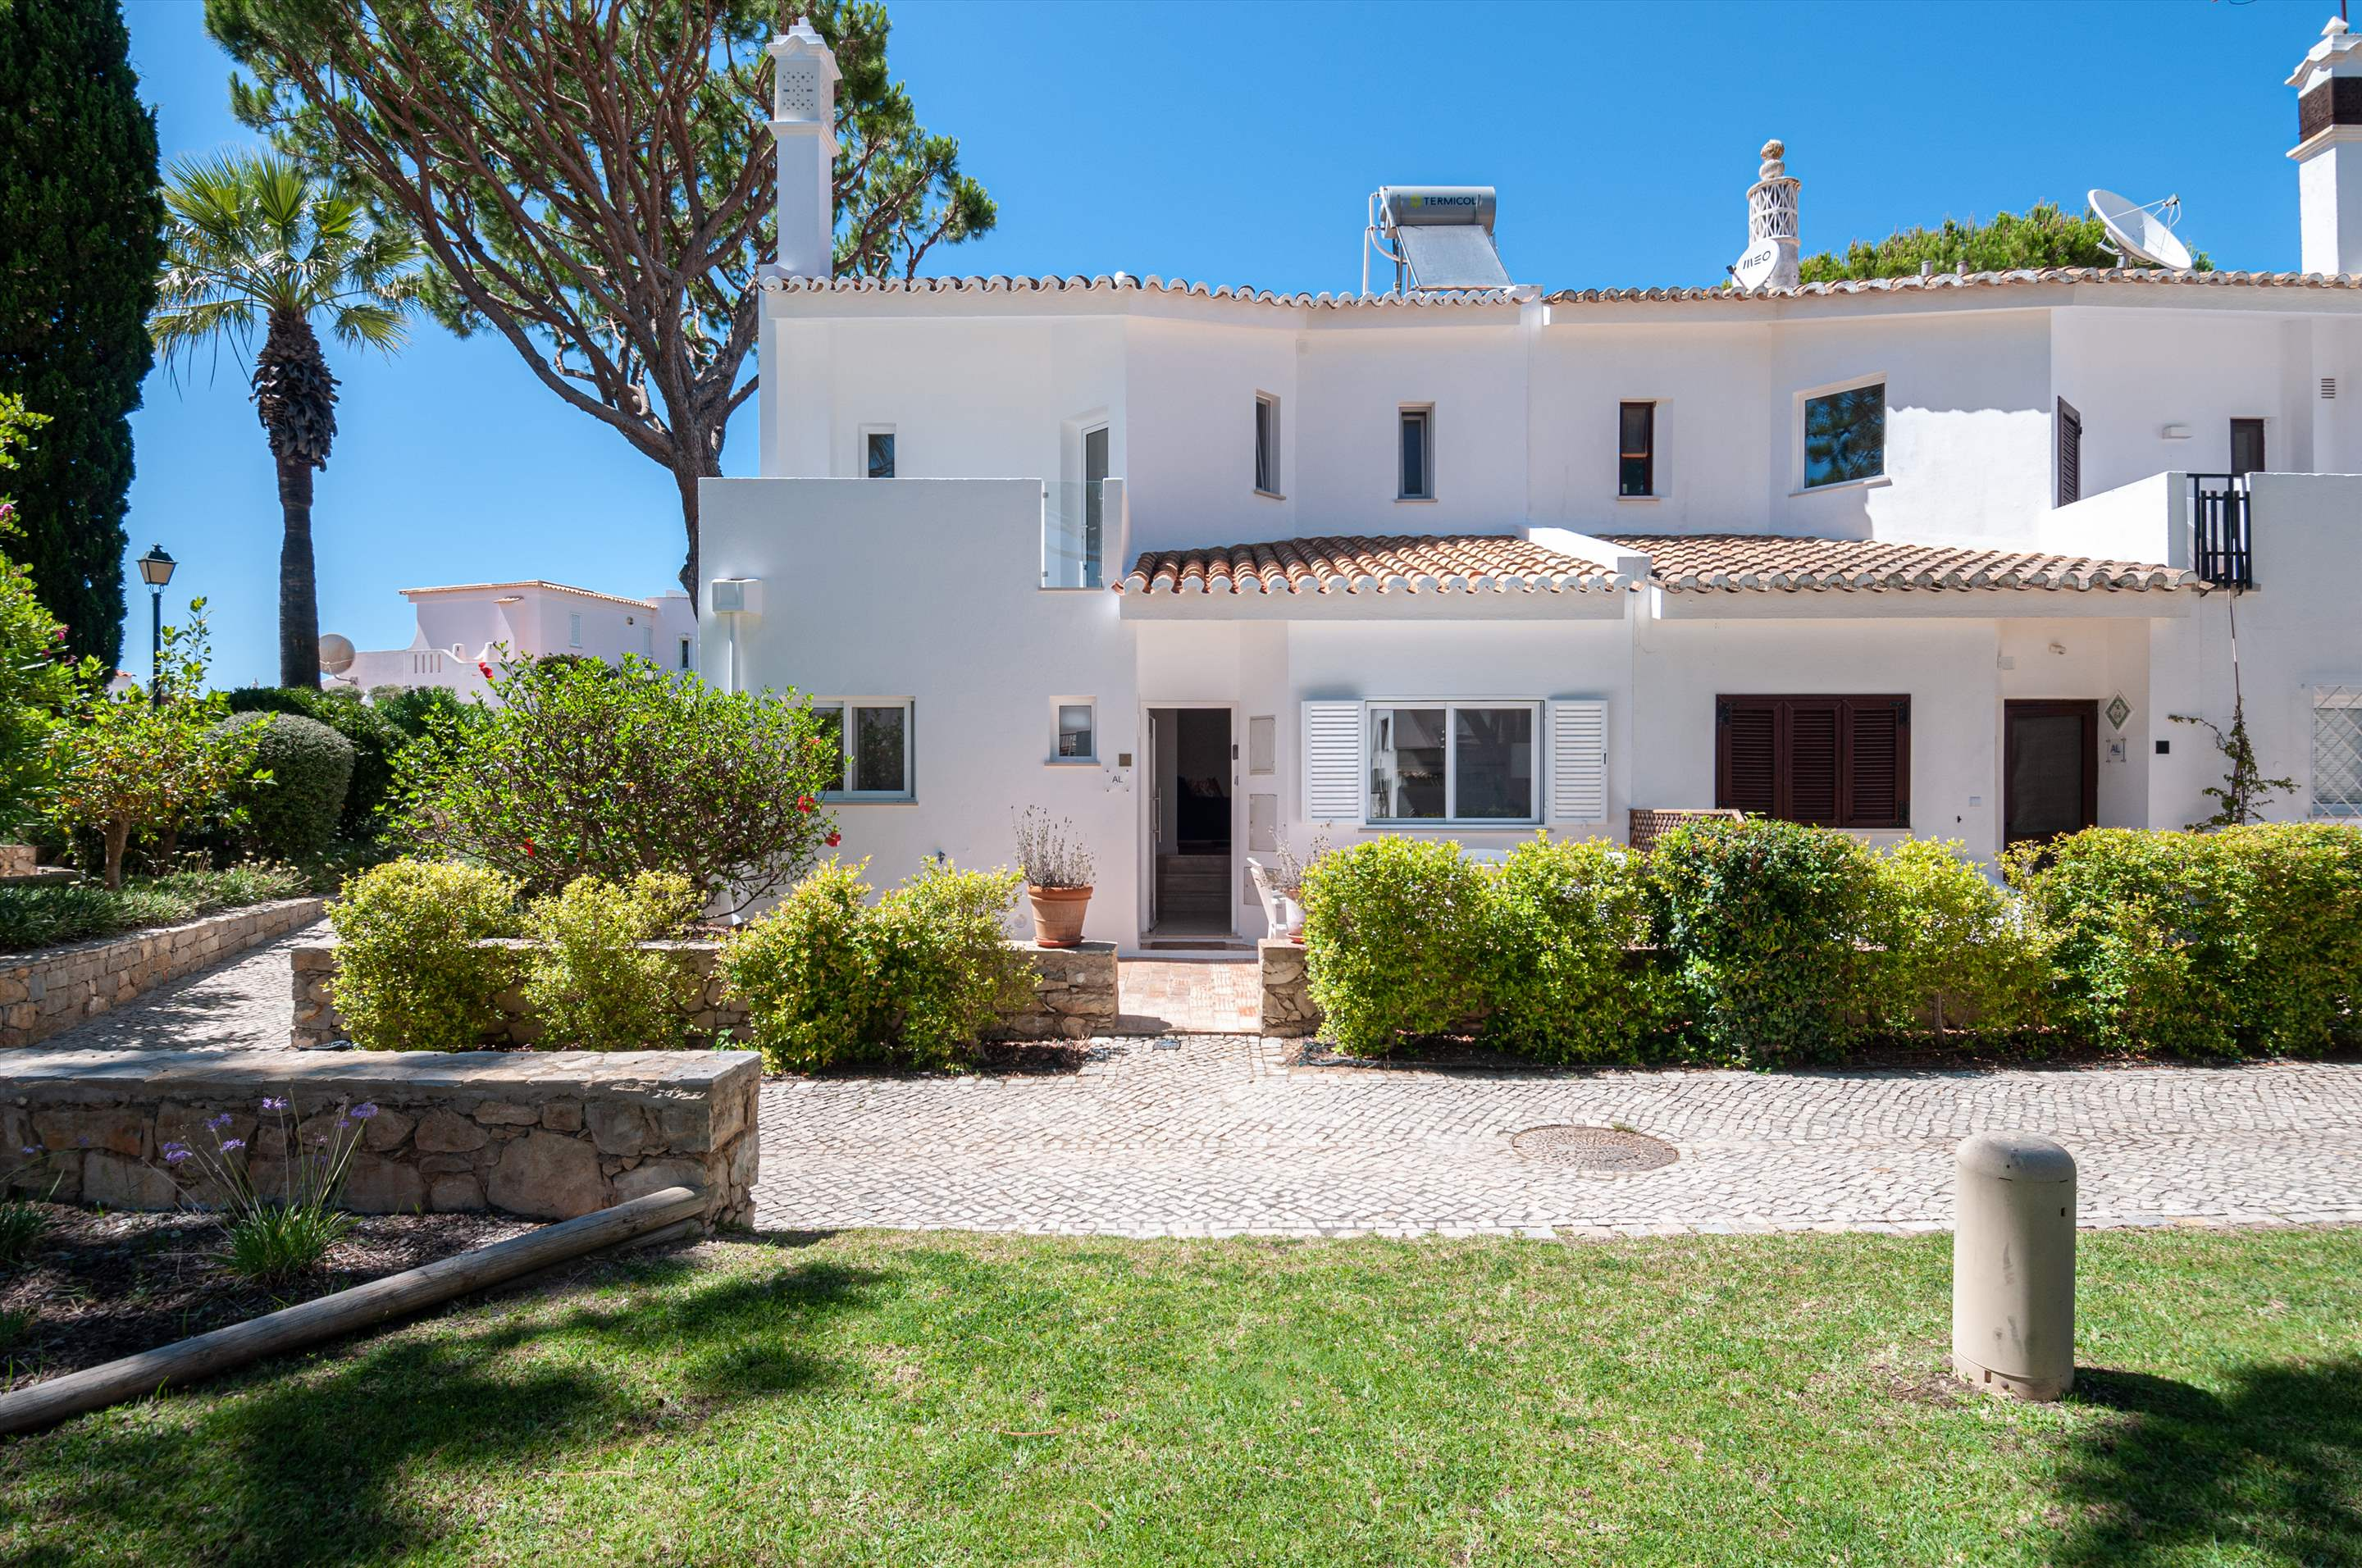 Villa Carmo, 3 bedroom villa in Vale do Lobo, Algarve Photo #1